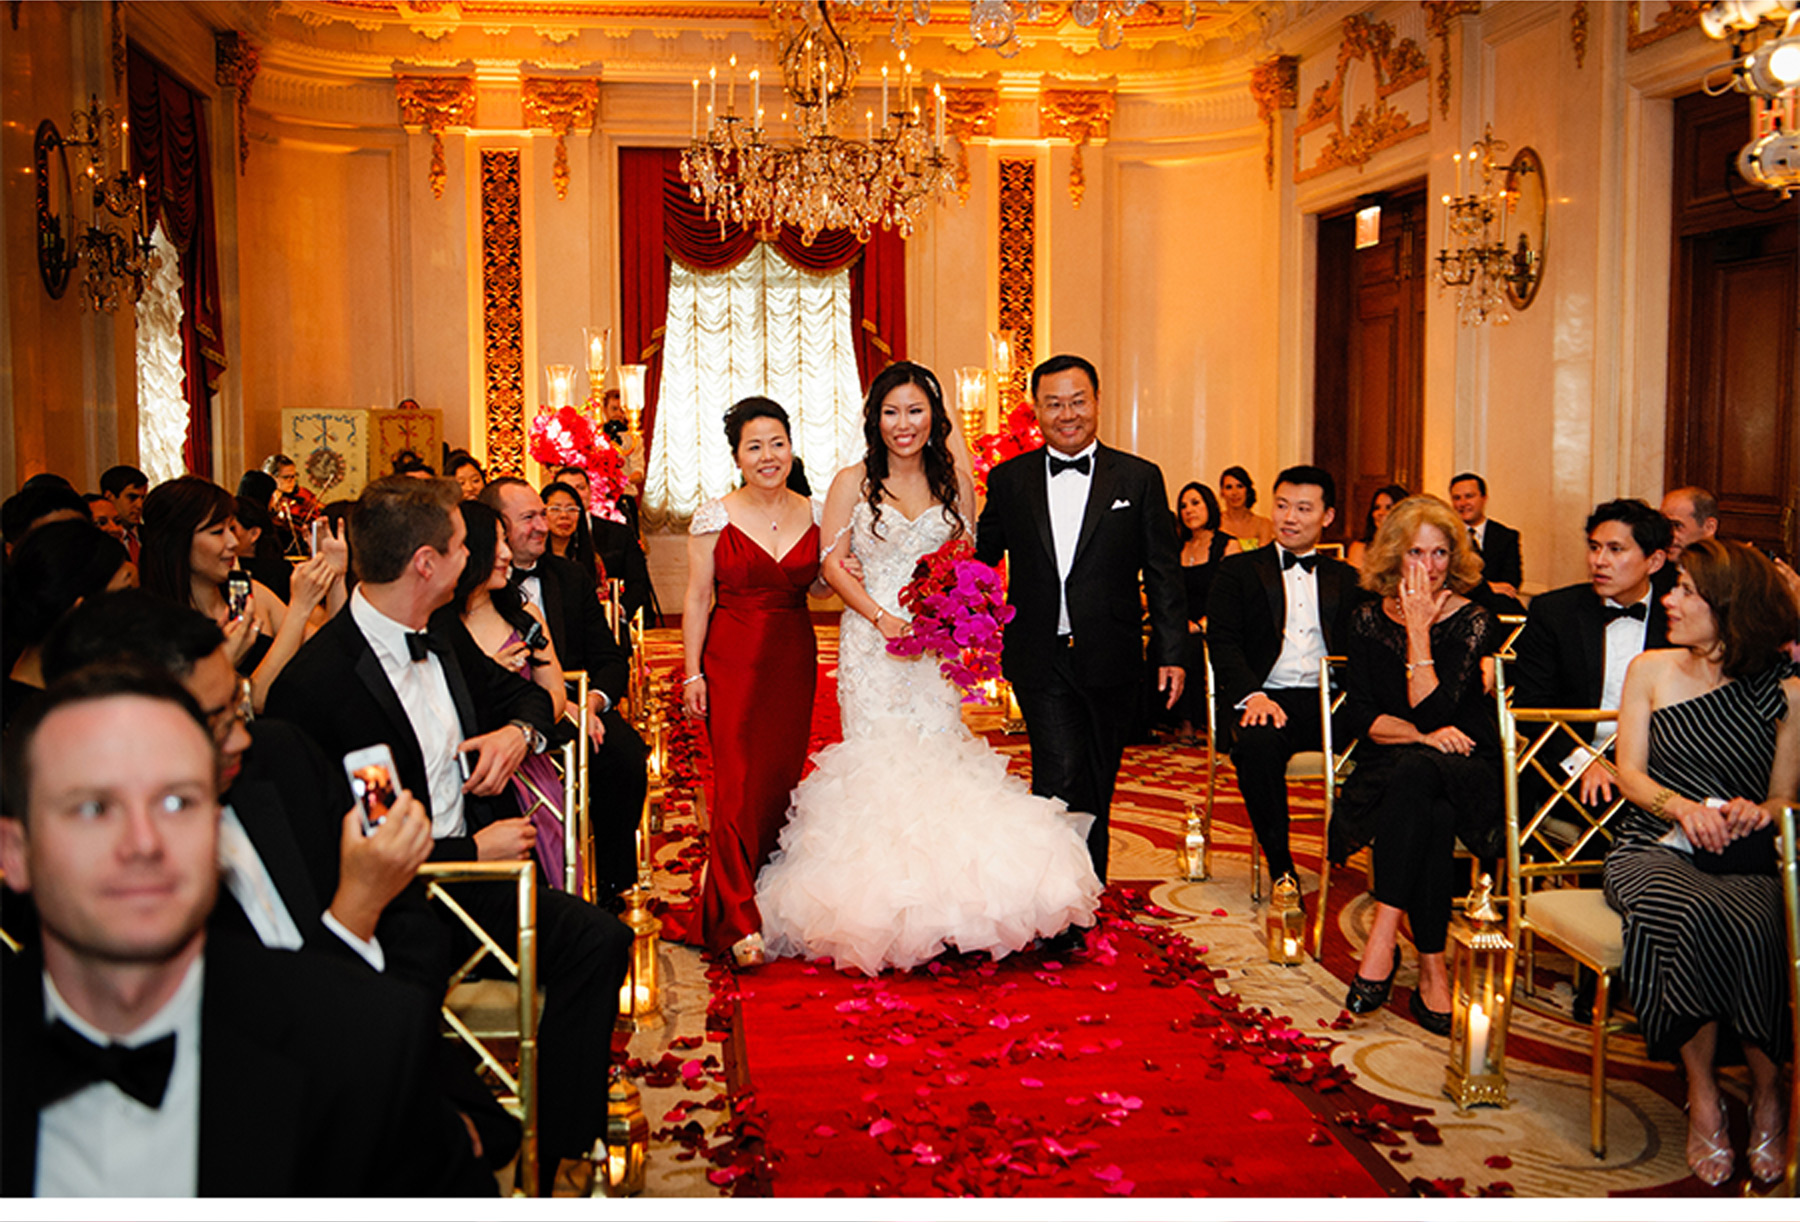 V227: Our Muse - Ornate Red and Gold Wedding at the St. Regis ...